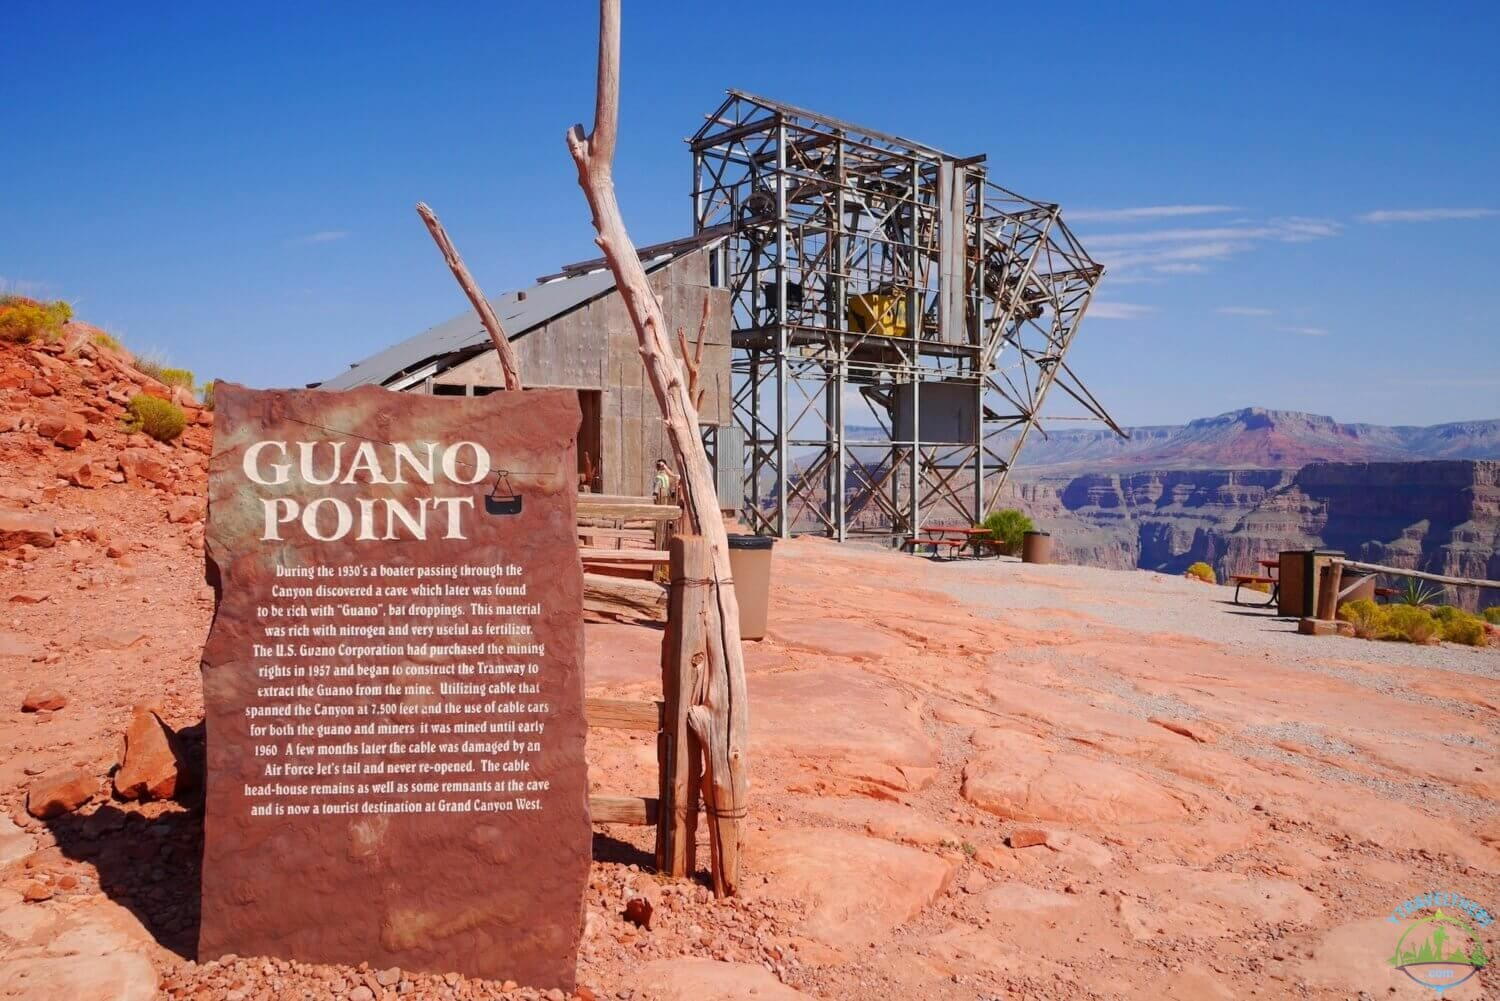 guano viewpoint, Grand Canyon west run guano point, old cable car guano point, Grand Canyon west rim sights